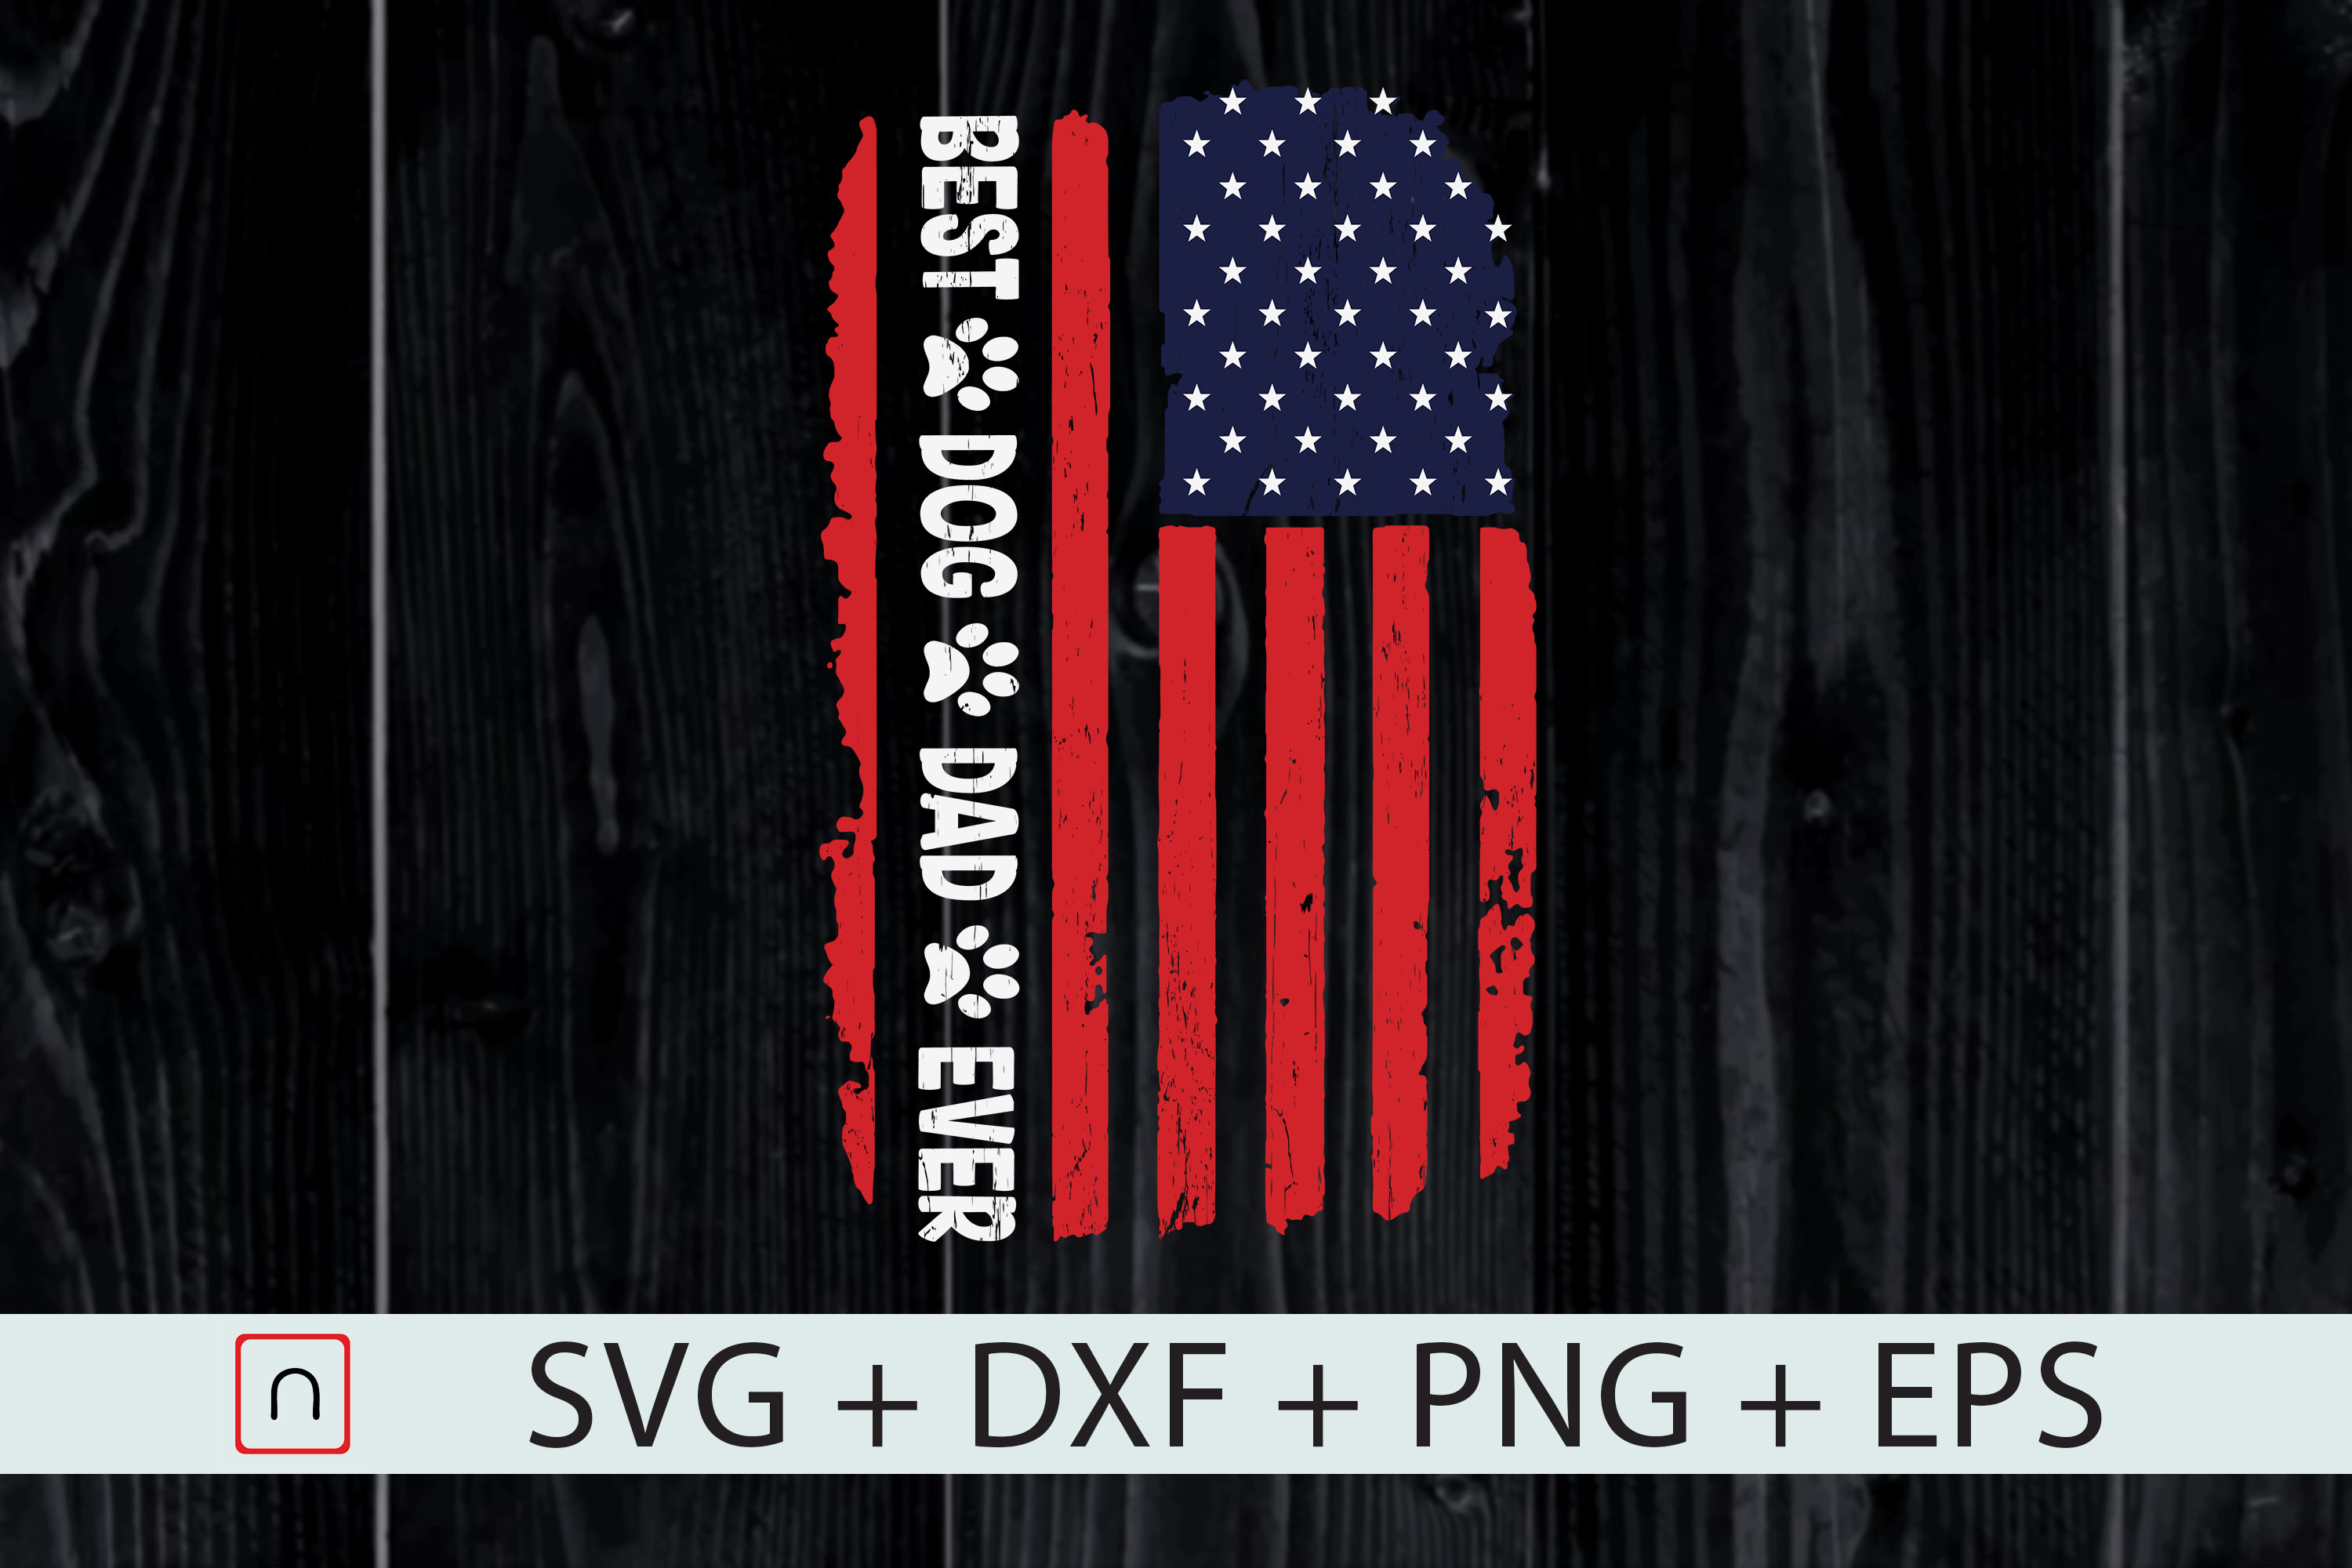 Download Free Best Dog Dad Ever Cool American Flag Graphic By Novalia for Cricut Explore, Silhouette and other cutting machines.